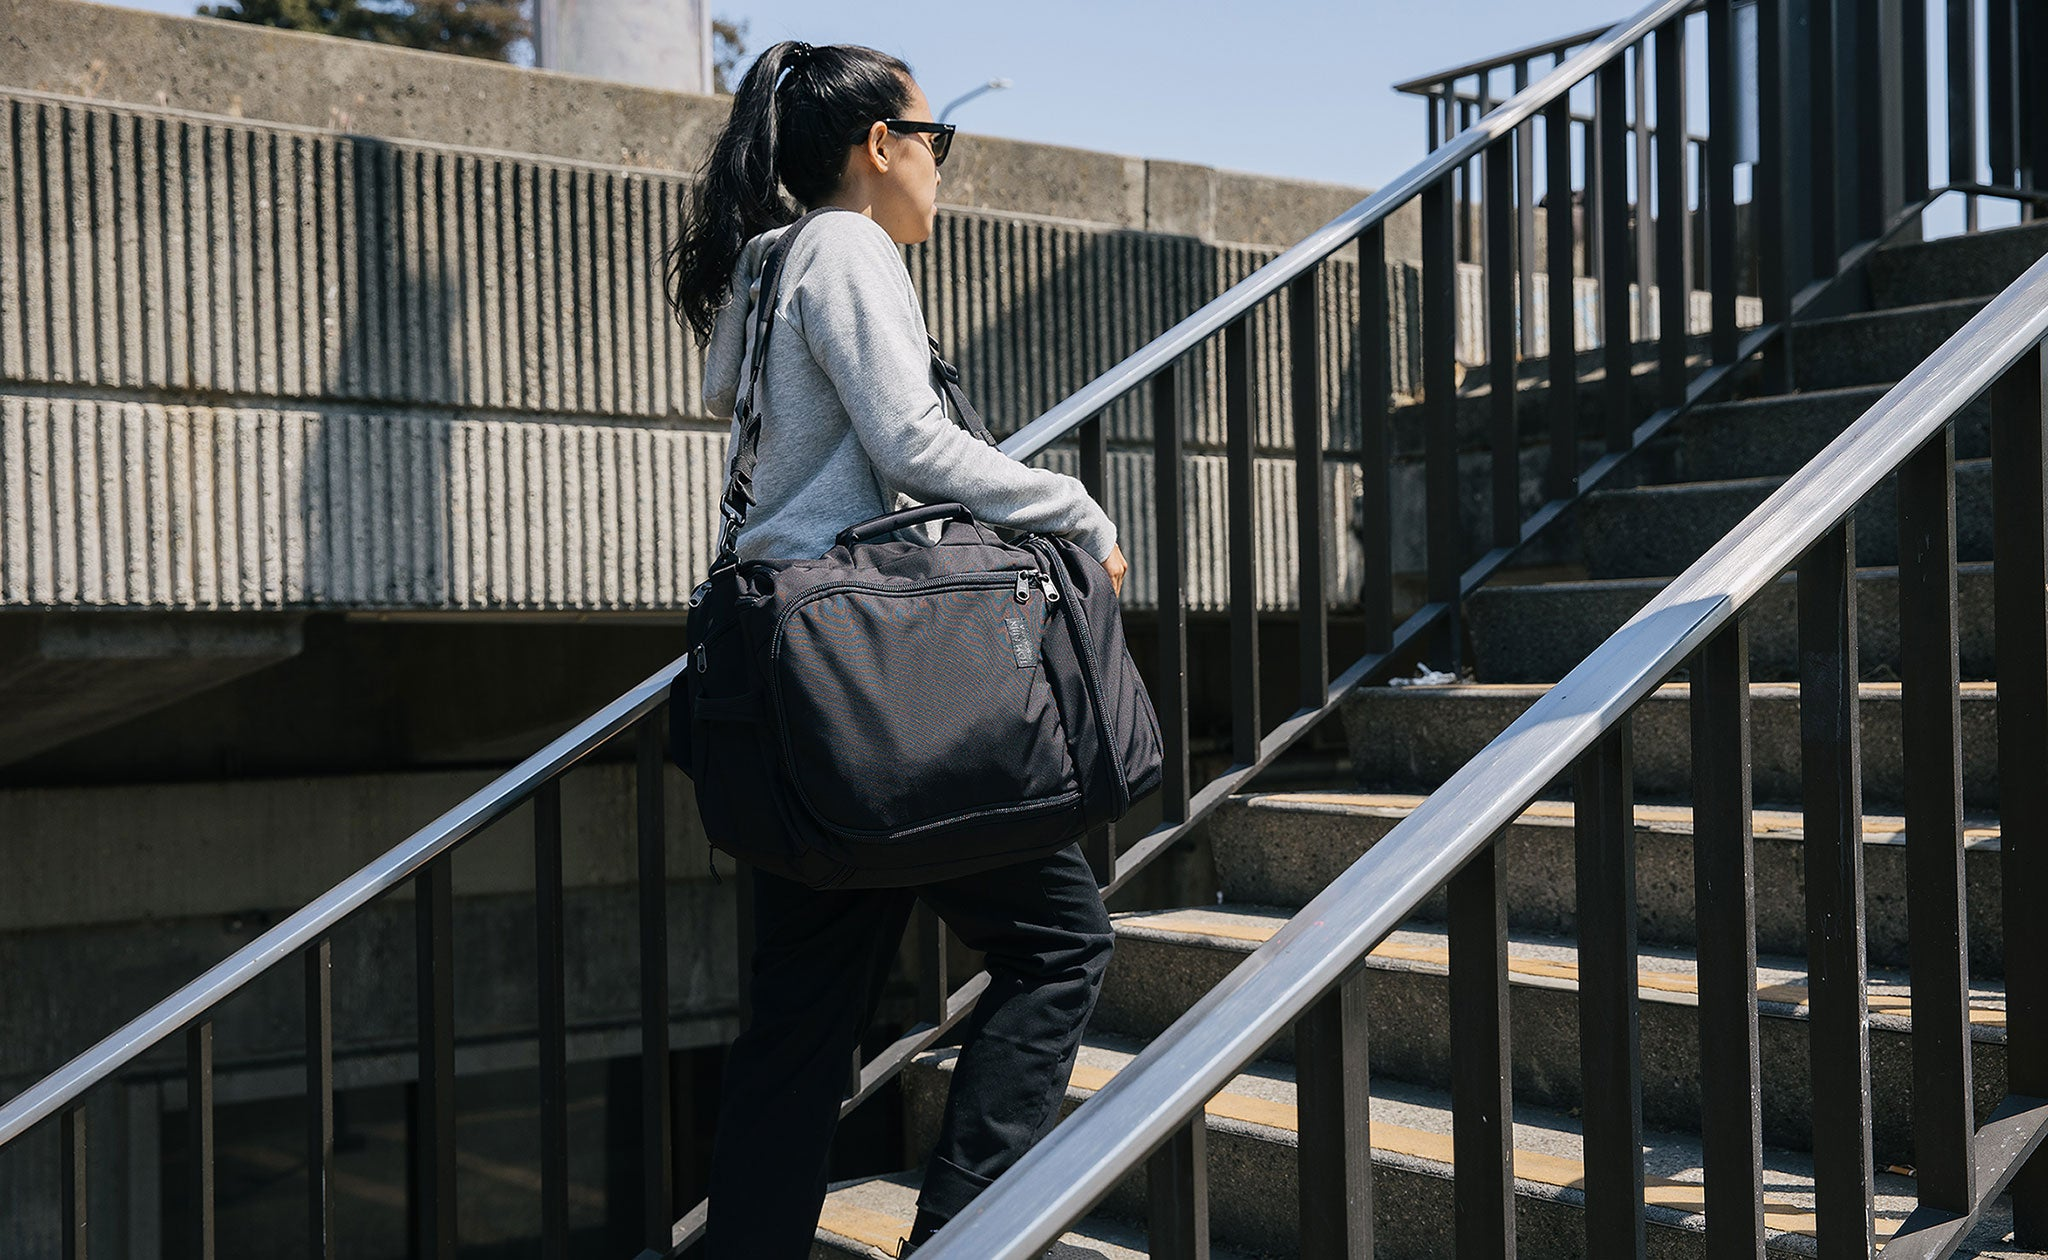 Person carrying the Techonaut as a shoulder bag. They're walking up a flight of stairs outdoors.